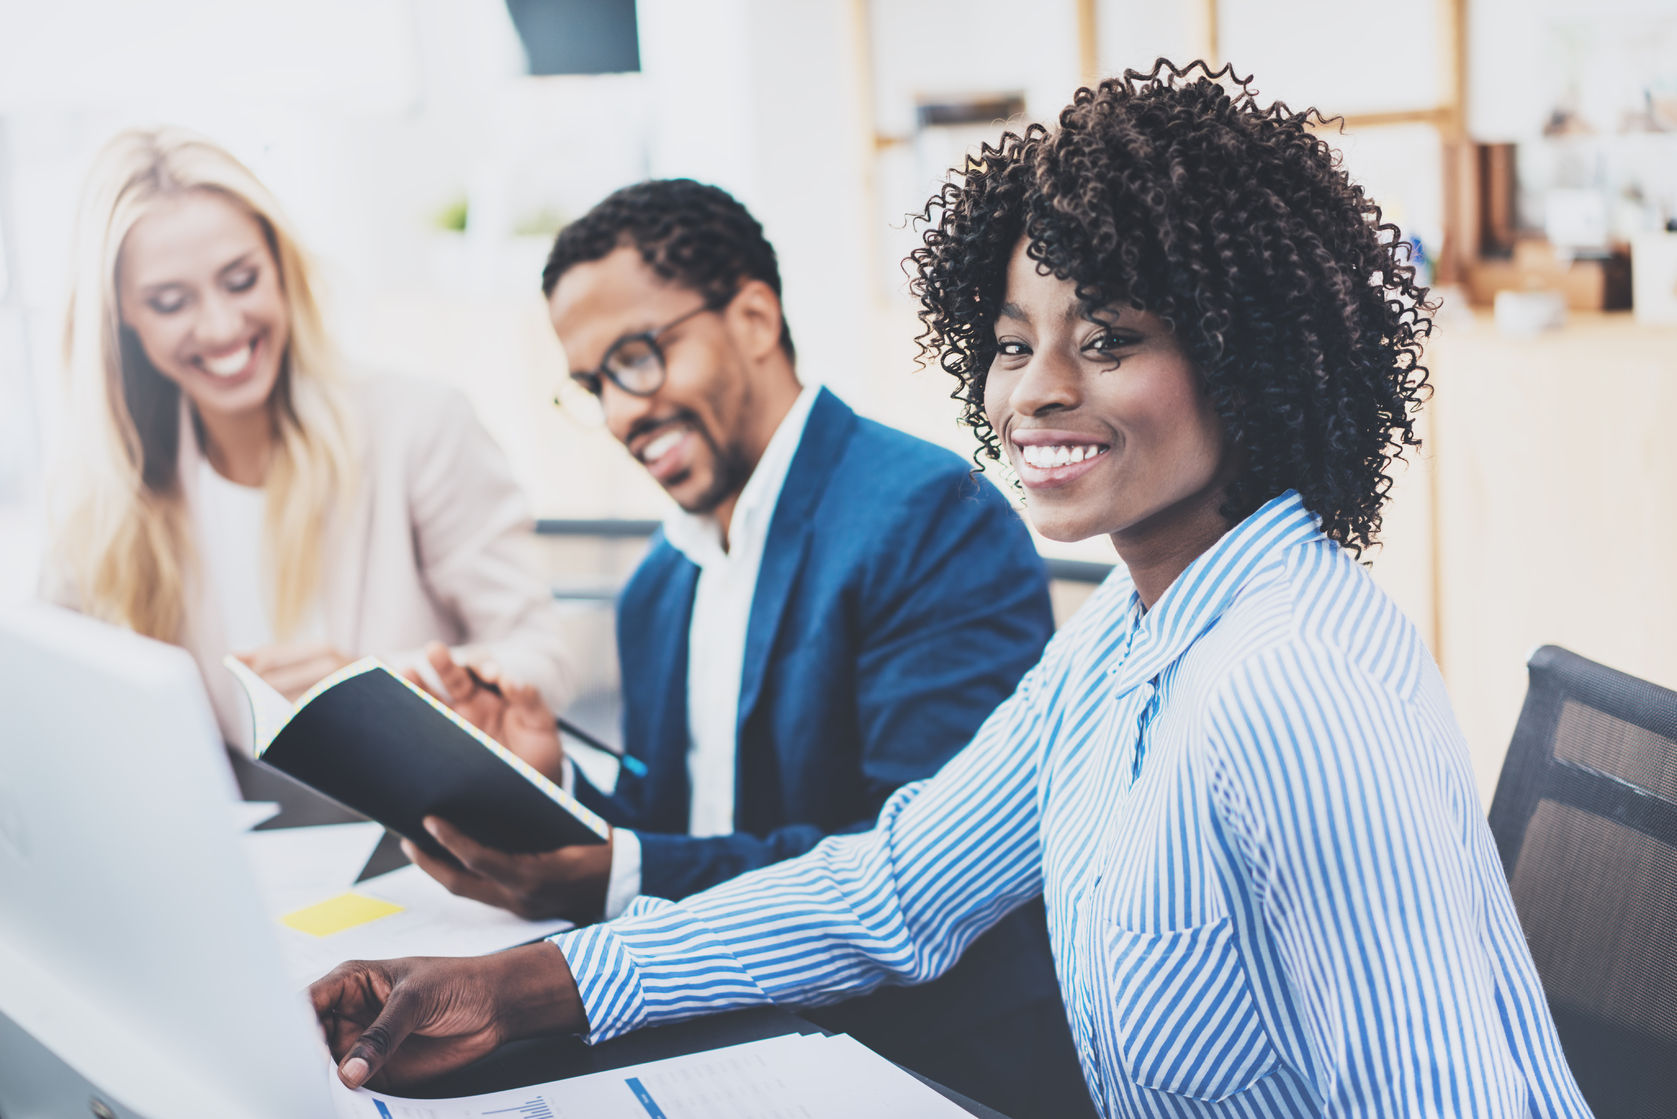 There are differences in the mind sets for Project Managers and Business Analysts that make them stronger as separate roles - and seeing these roles as separate seems old-fashioned to organizations.